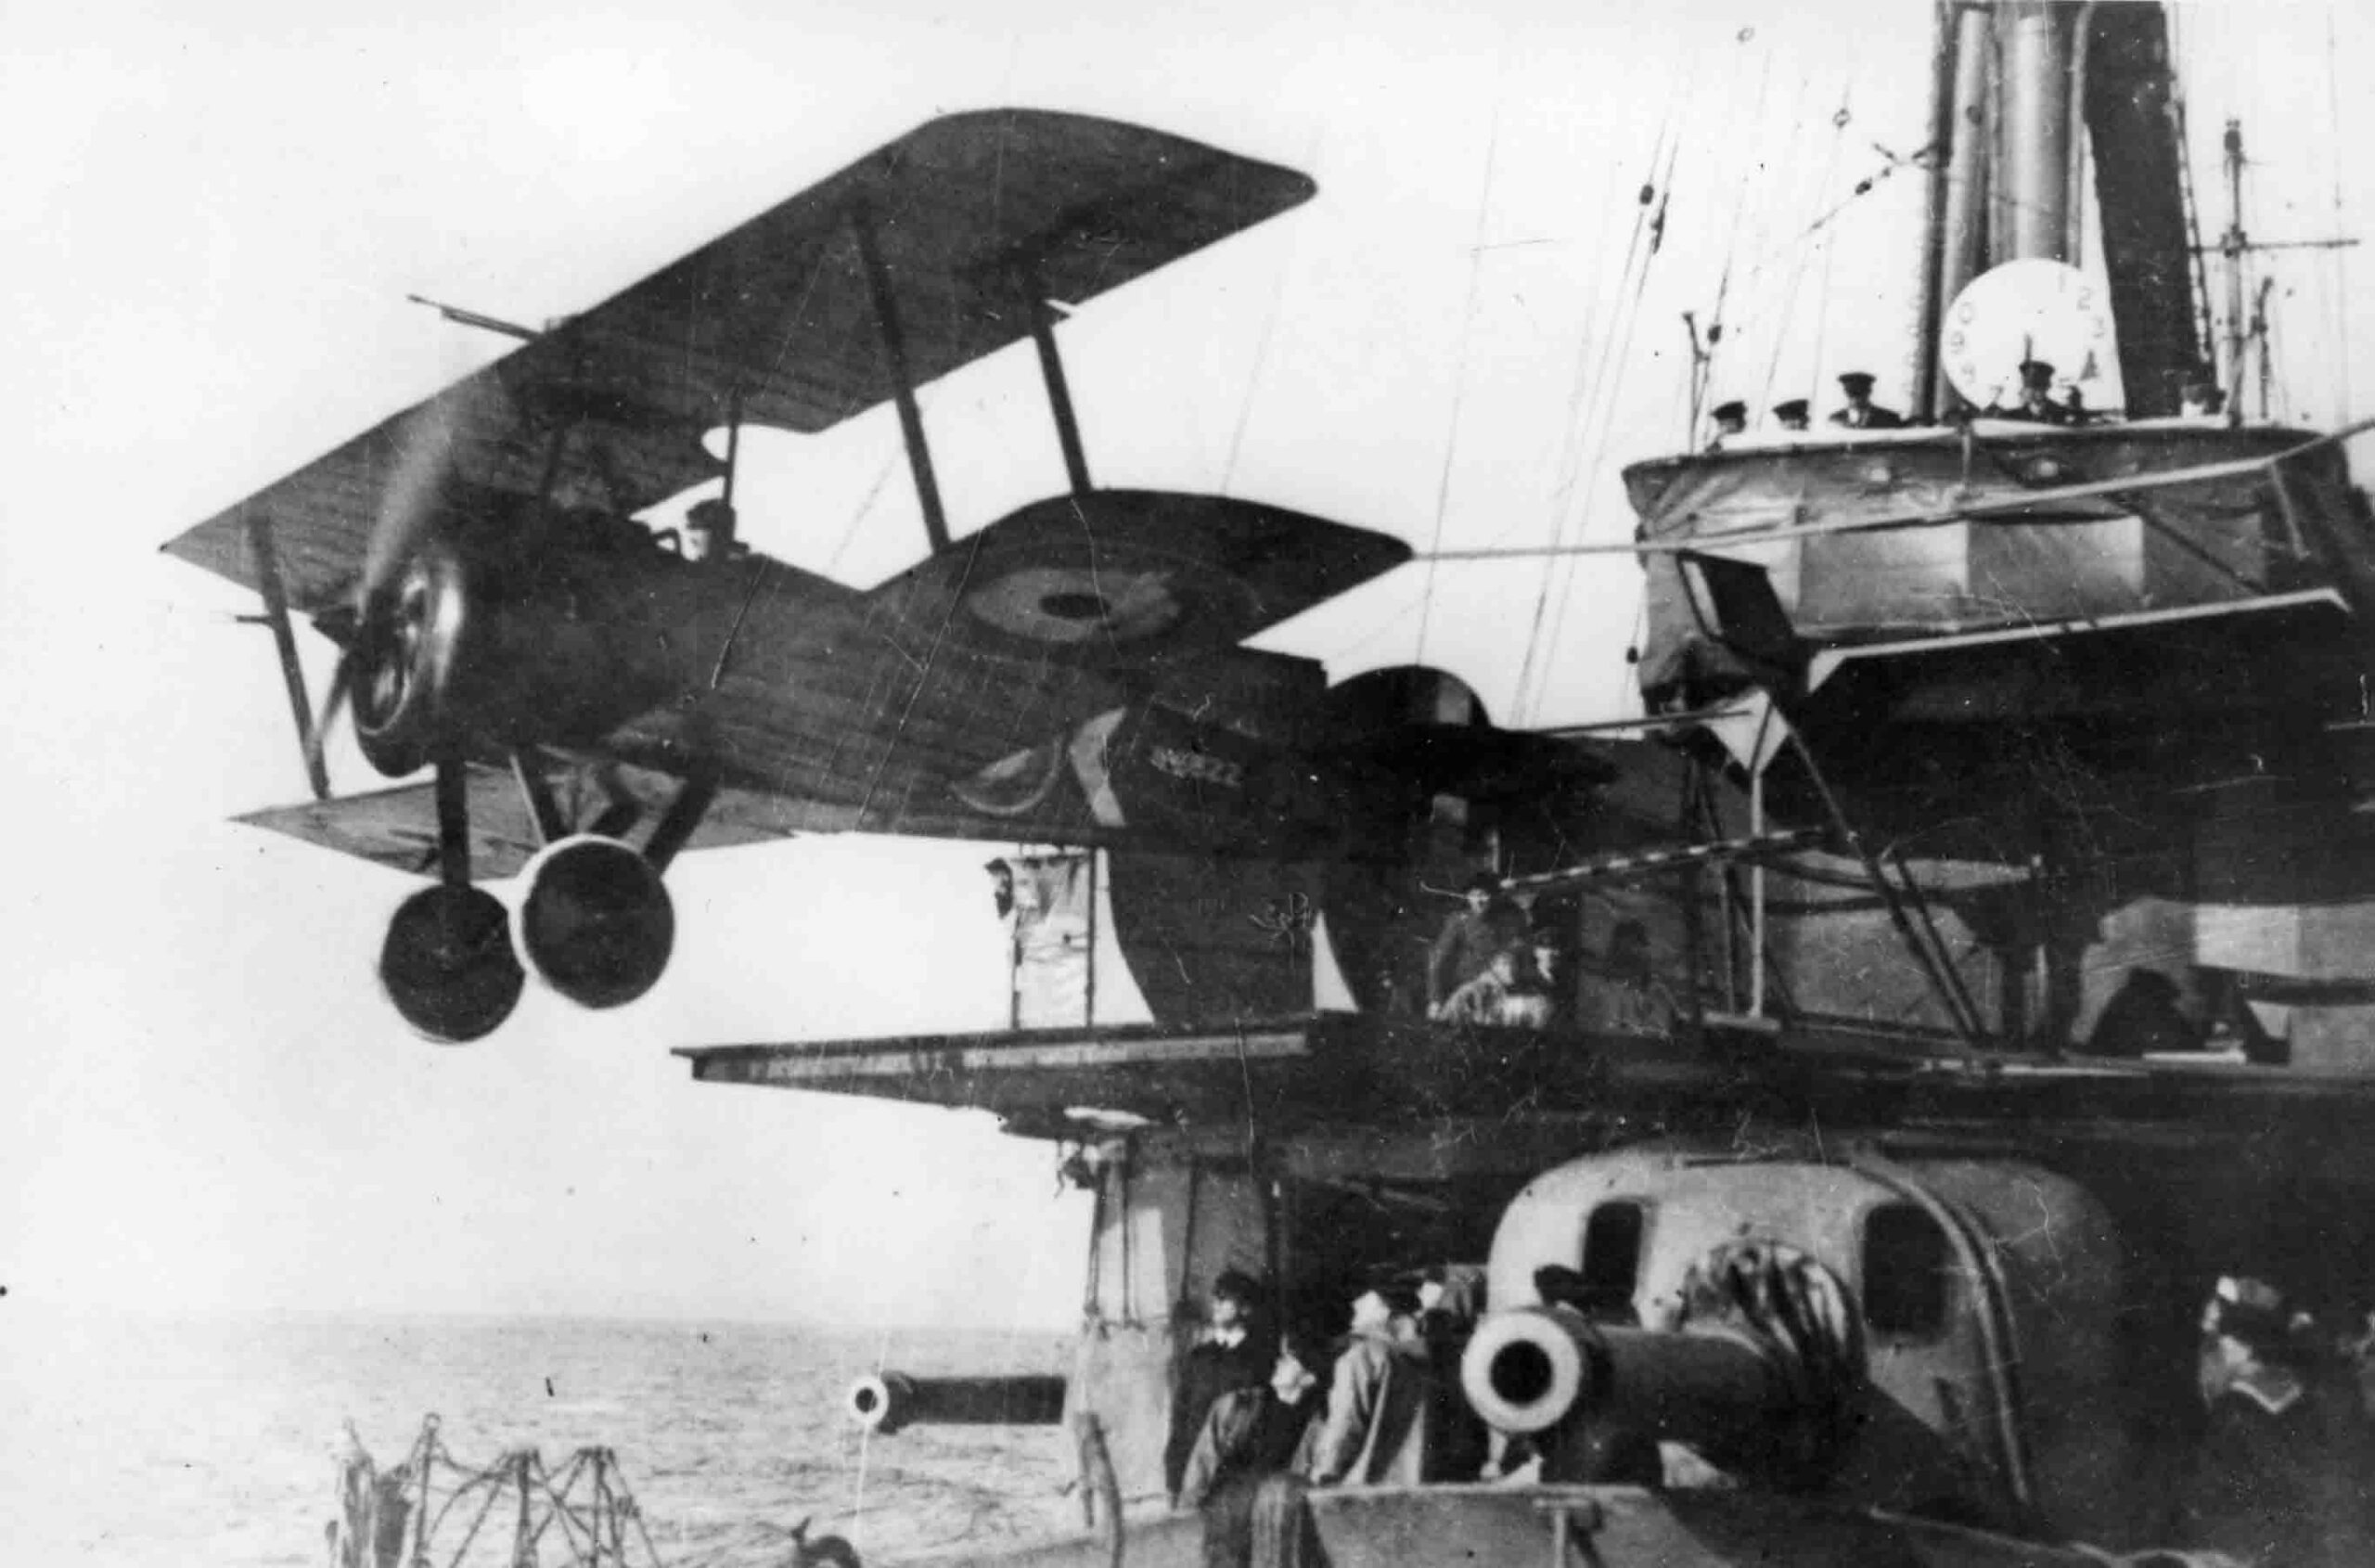 X003-2602/15828: Sopwith 2F.1 Camel, serial N6822.  This aircraft was photographed taking off from a gun turret platform aboard HMAS Sydney, probably during 1918.